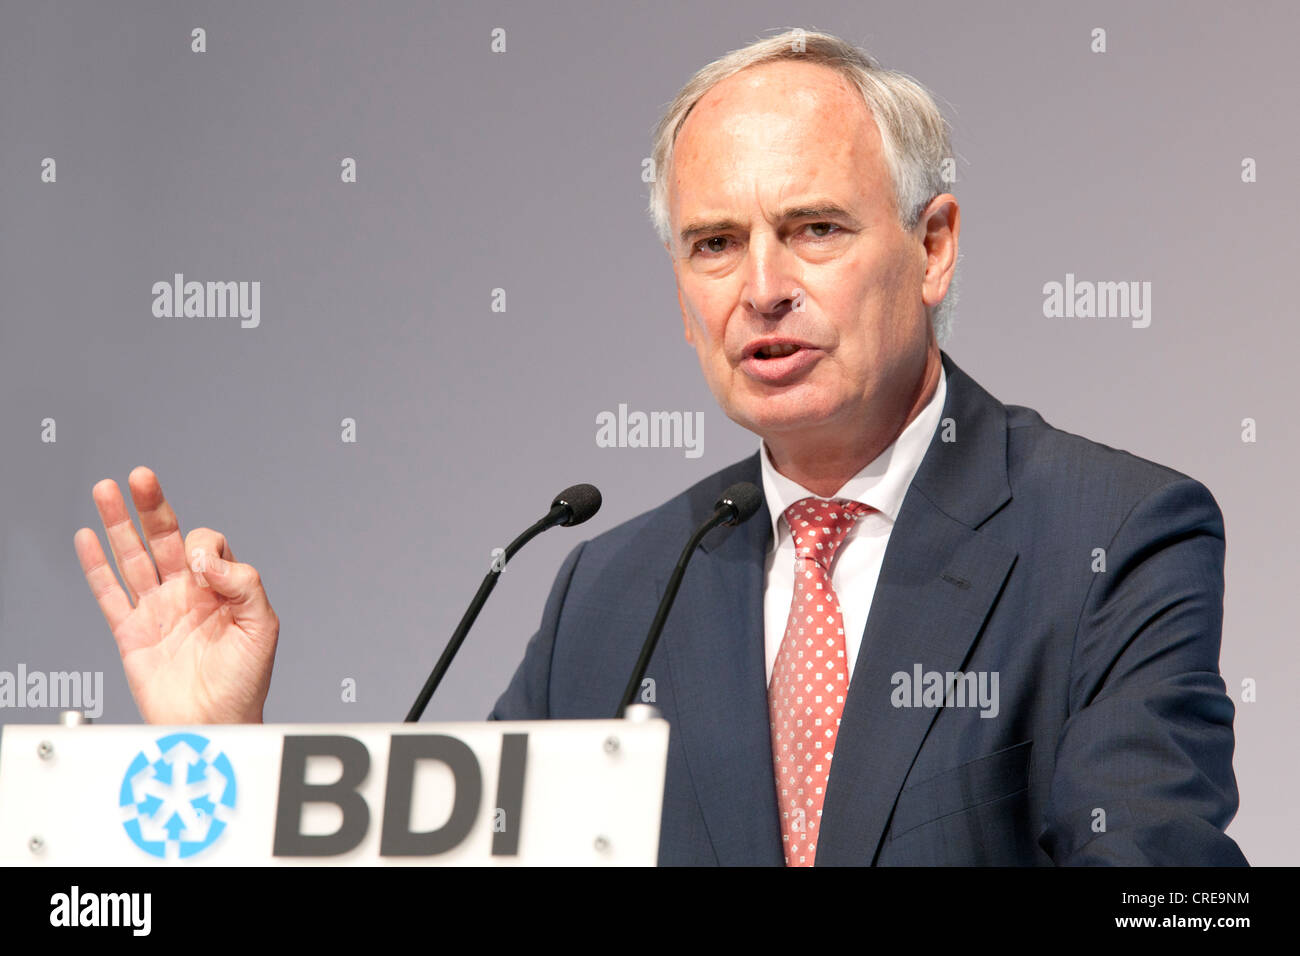 Hans-Peter Keitel, chairman of the Bundesverband der Deutschen Industrie e.V., Federation of German Industries, - Stock Image